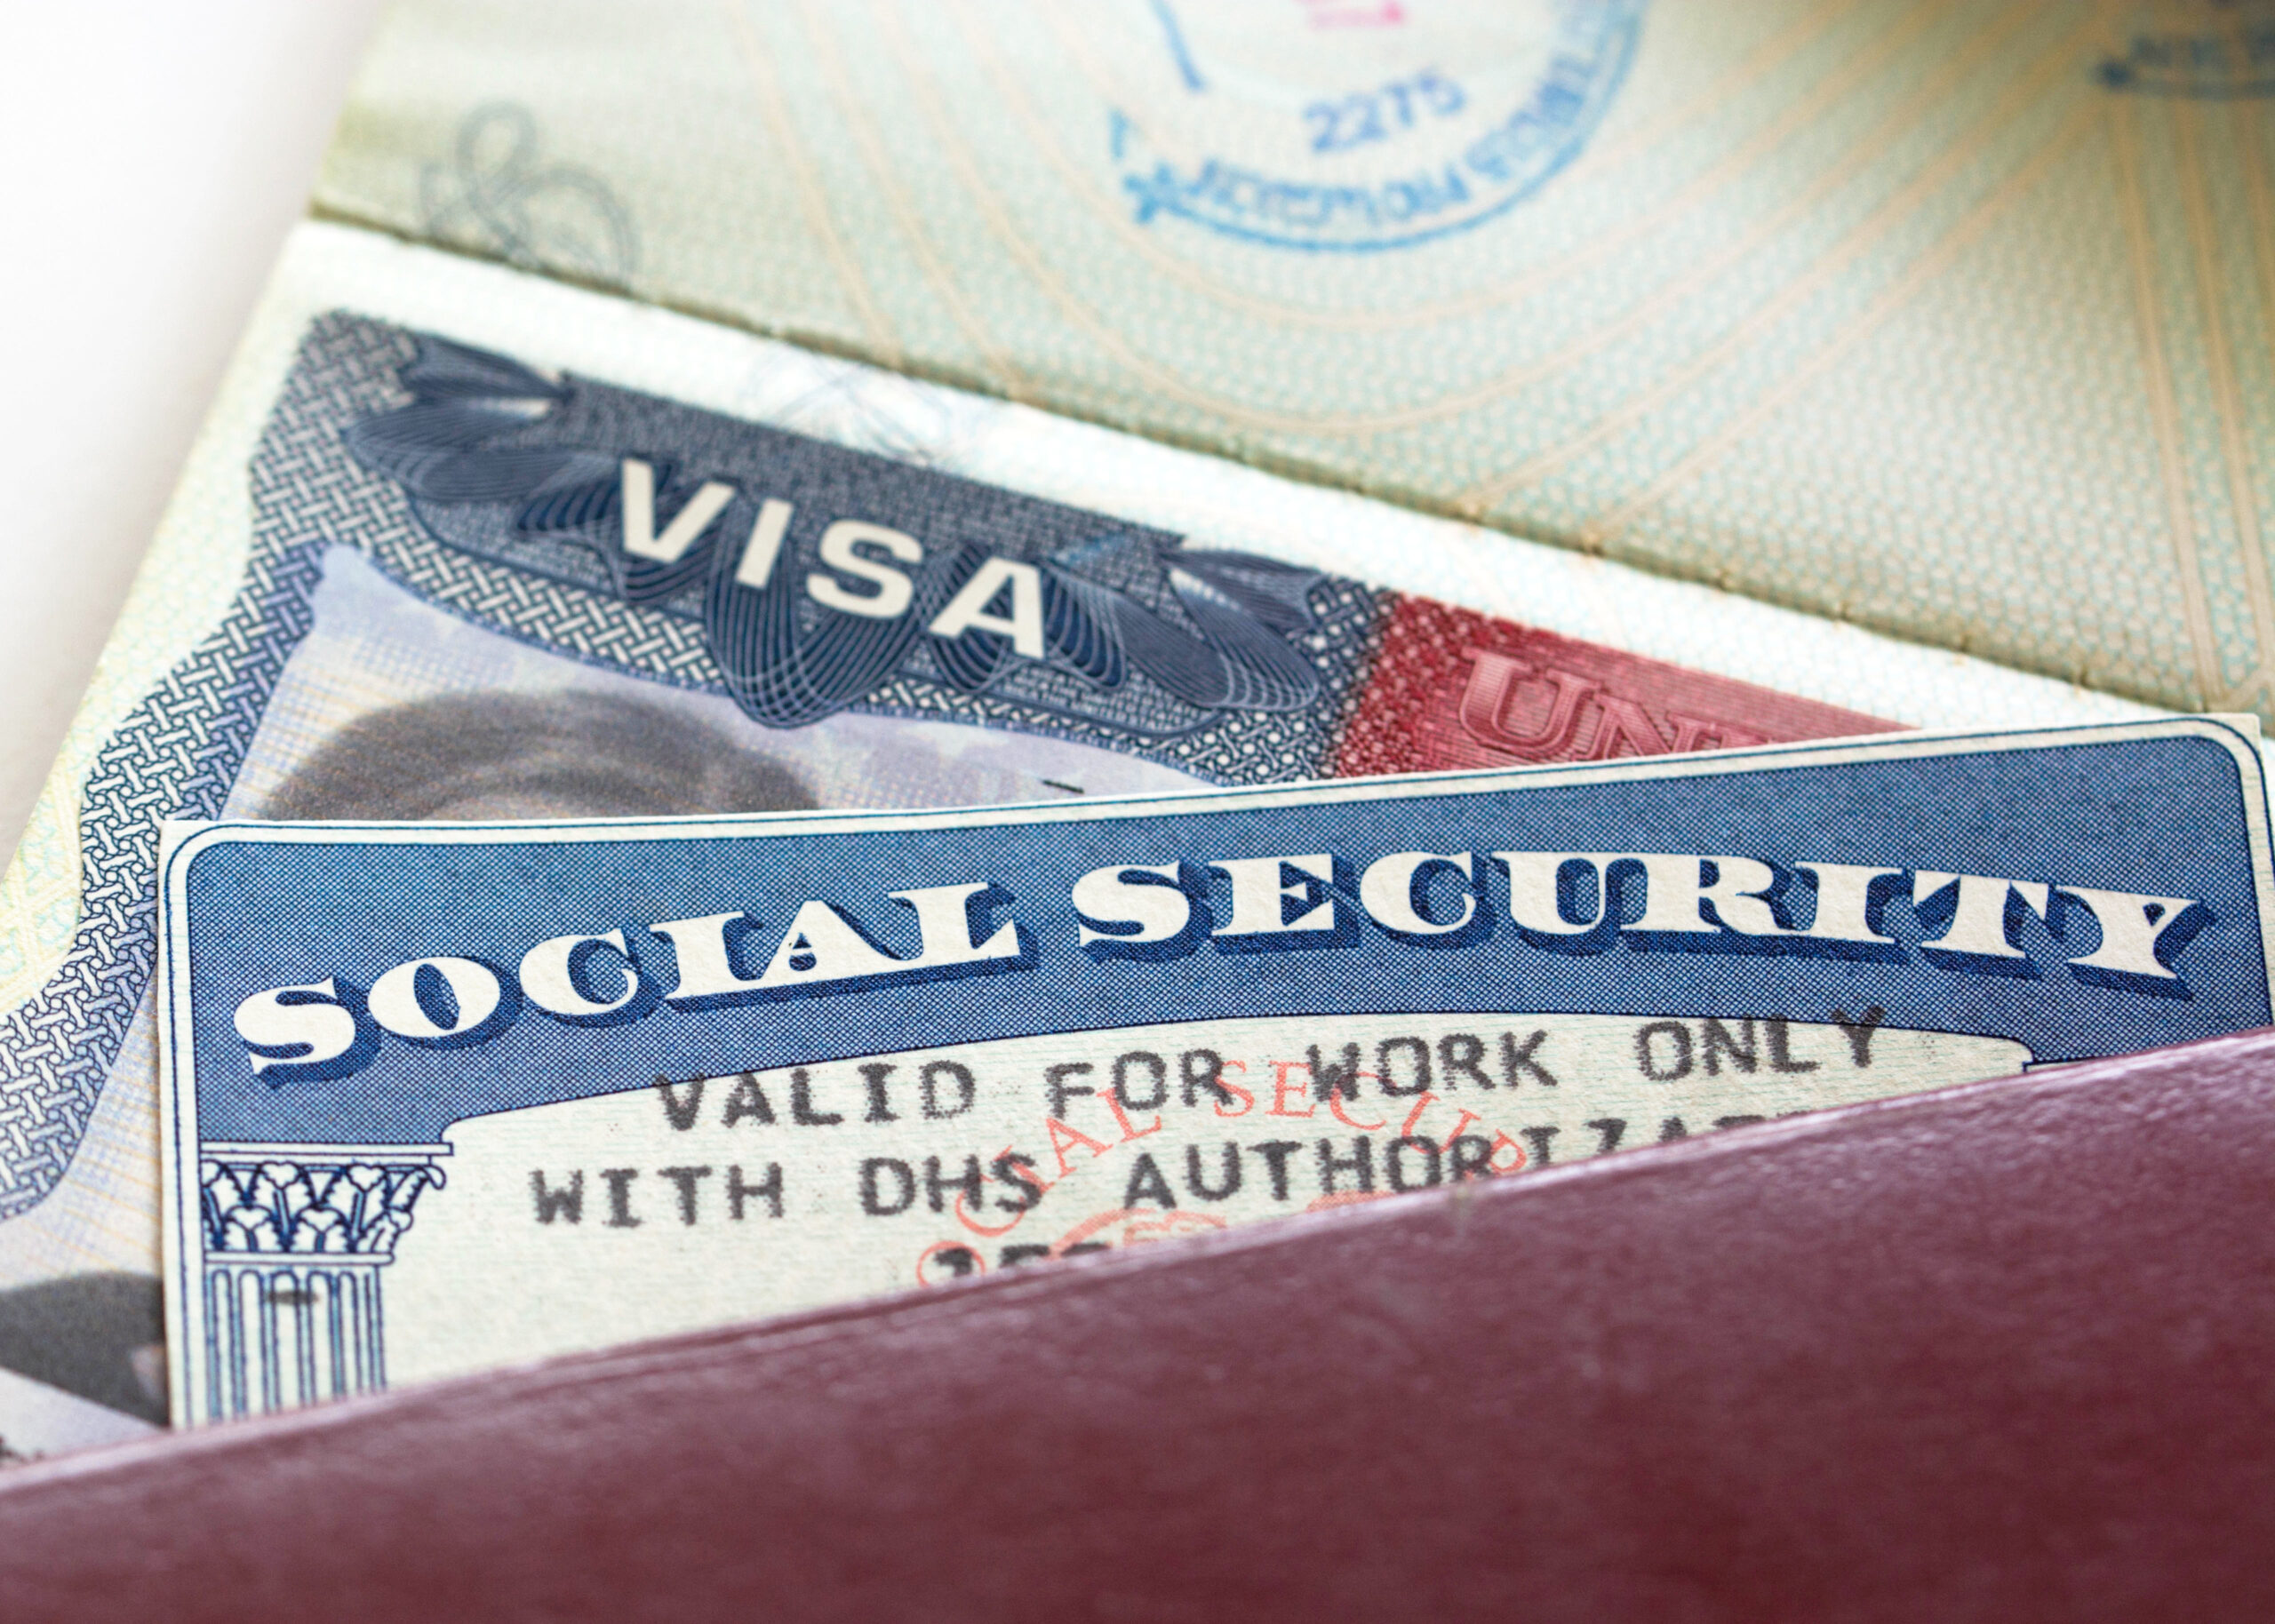 The H-1 B visa for highly skilled workers.